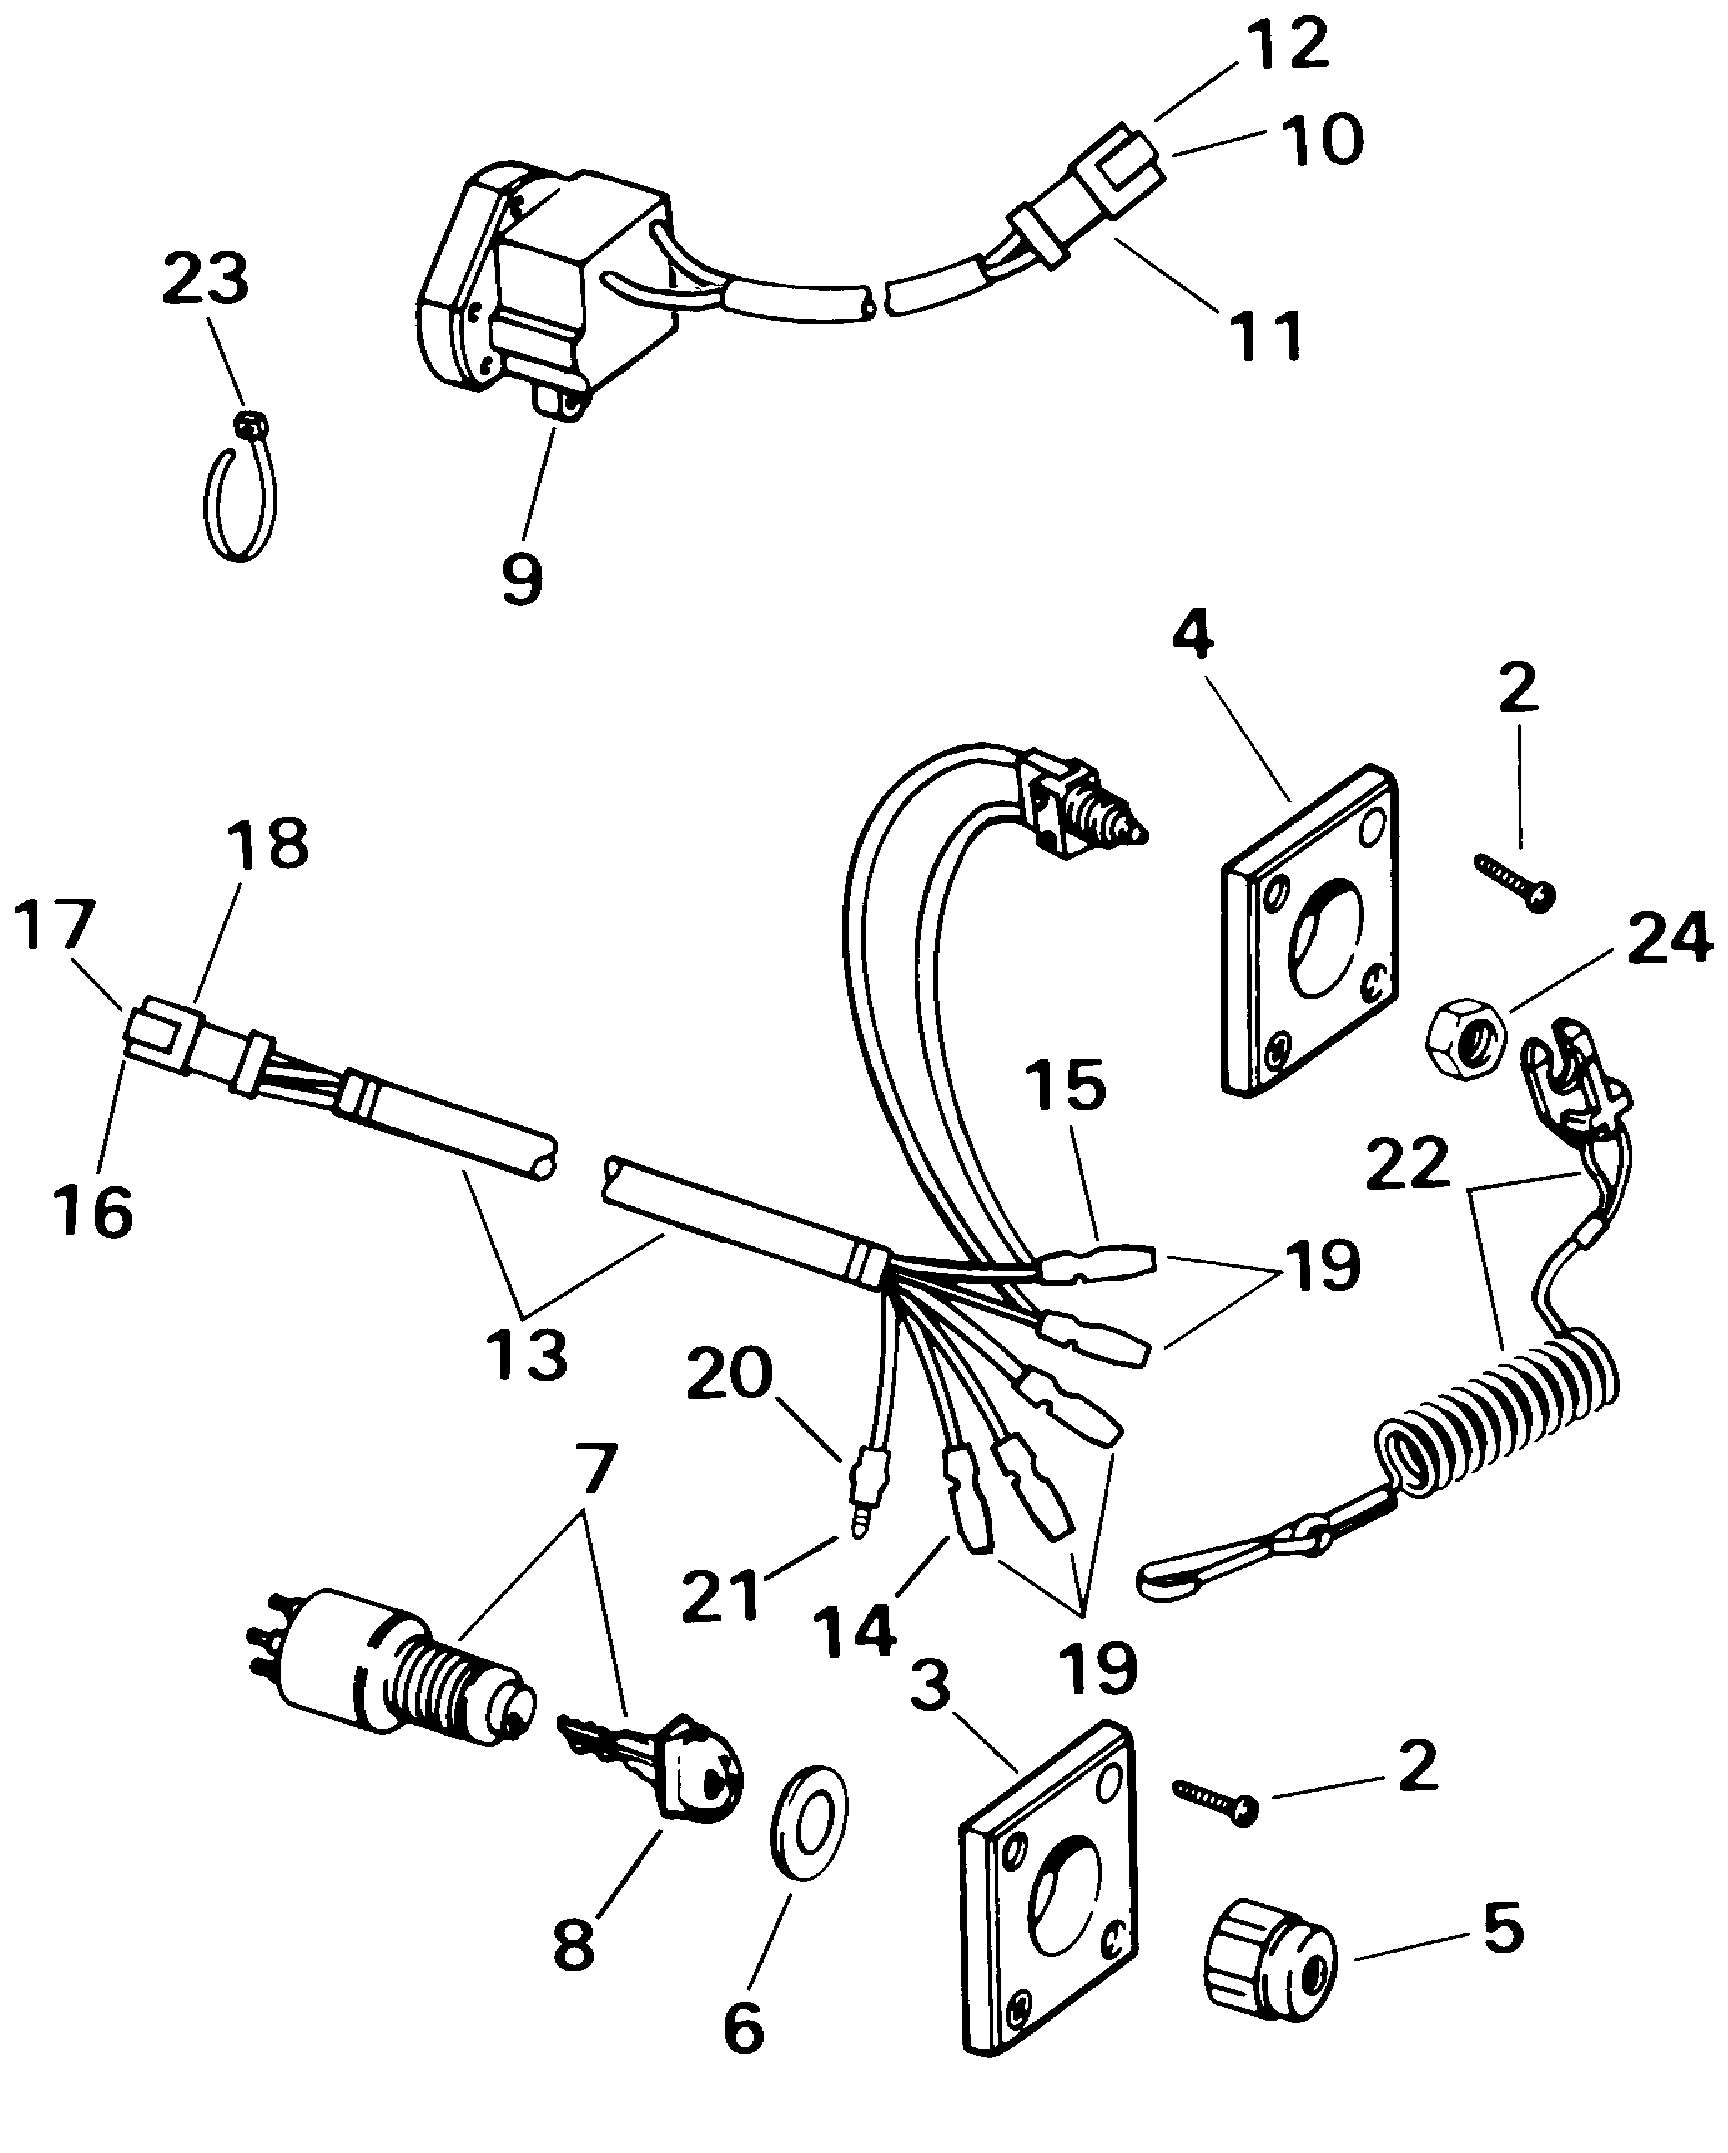 hight resolution of ignition switch remote stop switch system check electrical 2000 rh marineengine com boat ignition switch wiring diagram 1993 evinrude ignition switch wiring